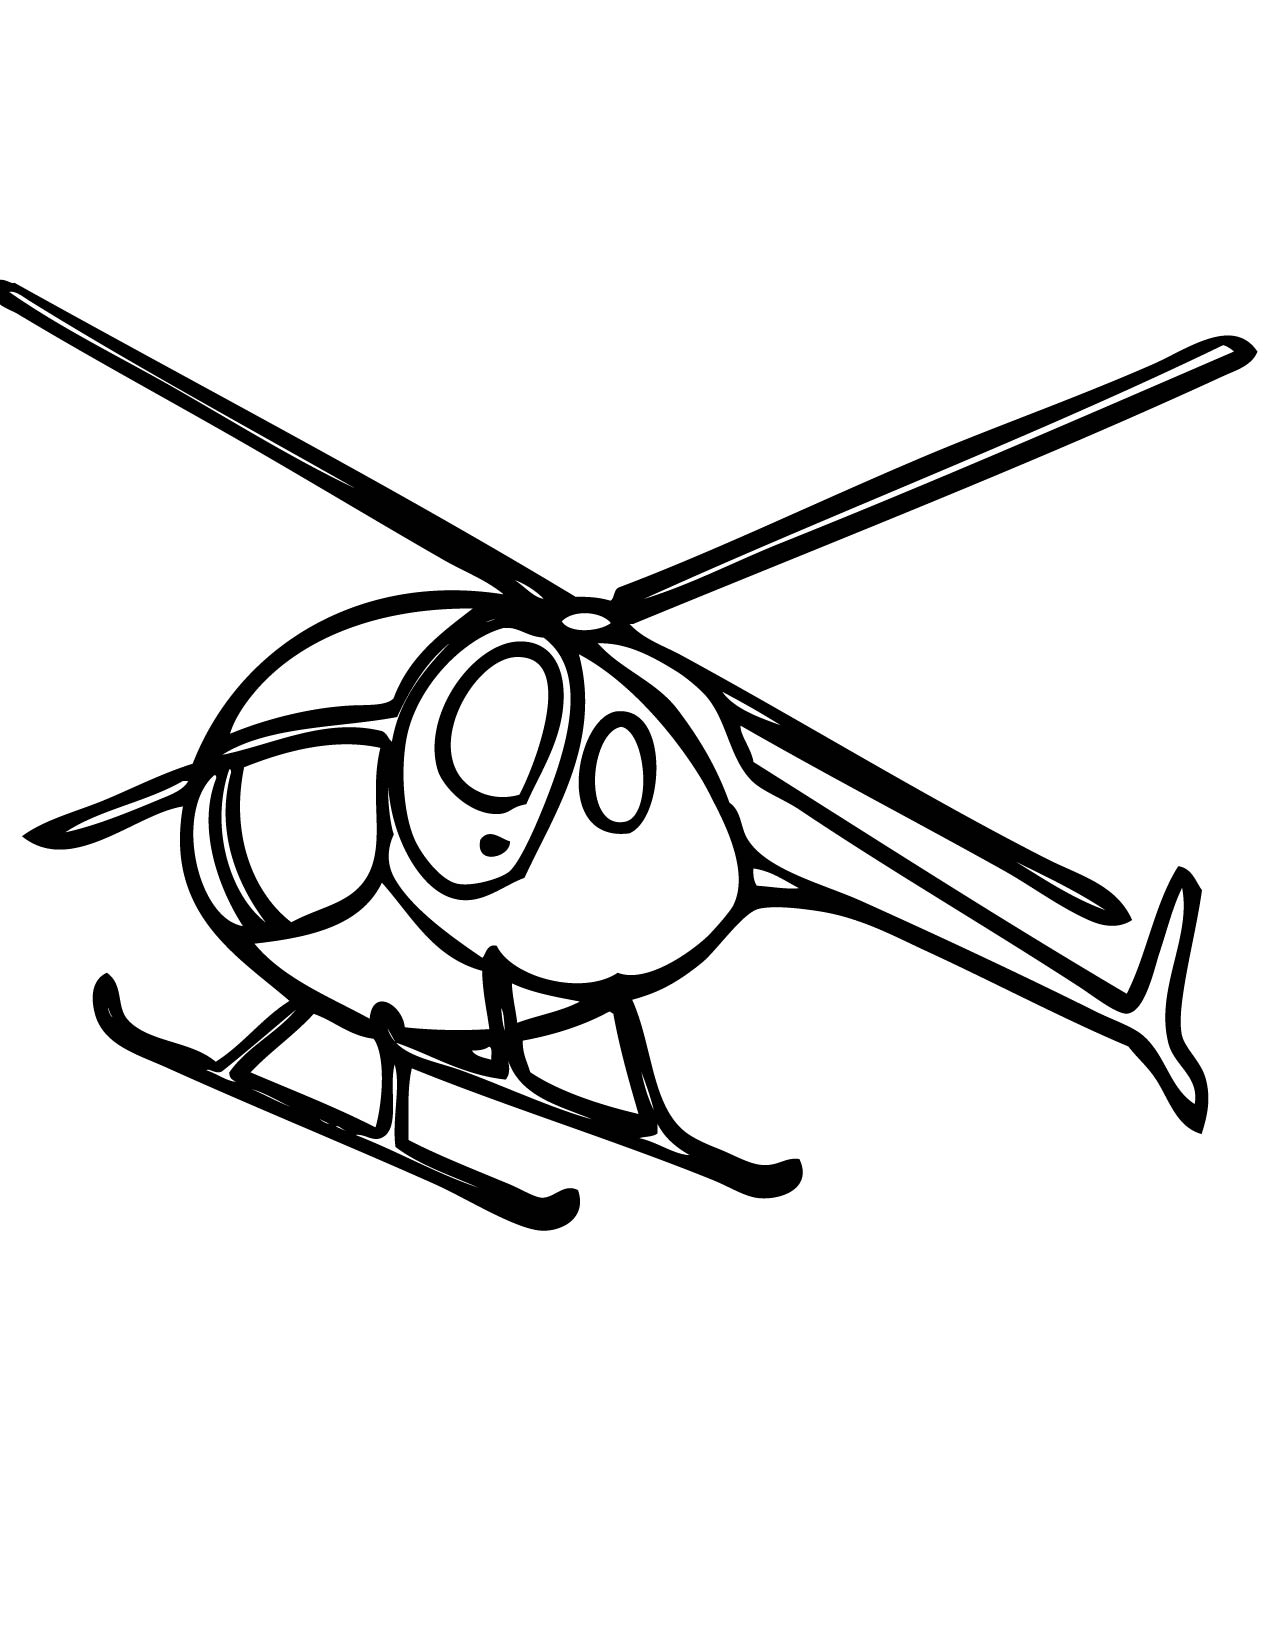 coloring pages helicopter - photo#32